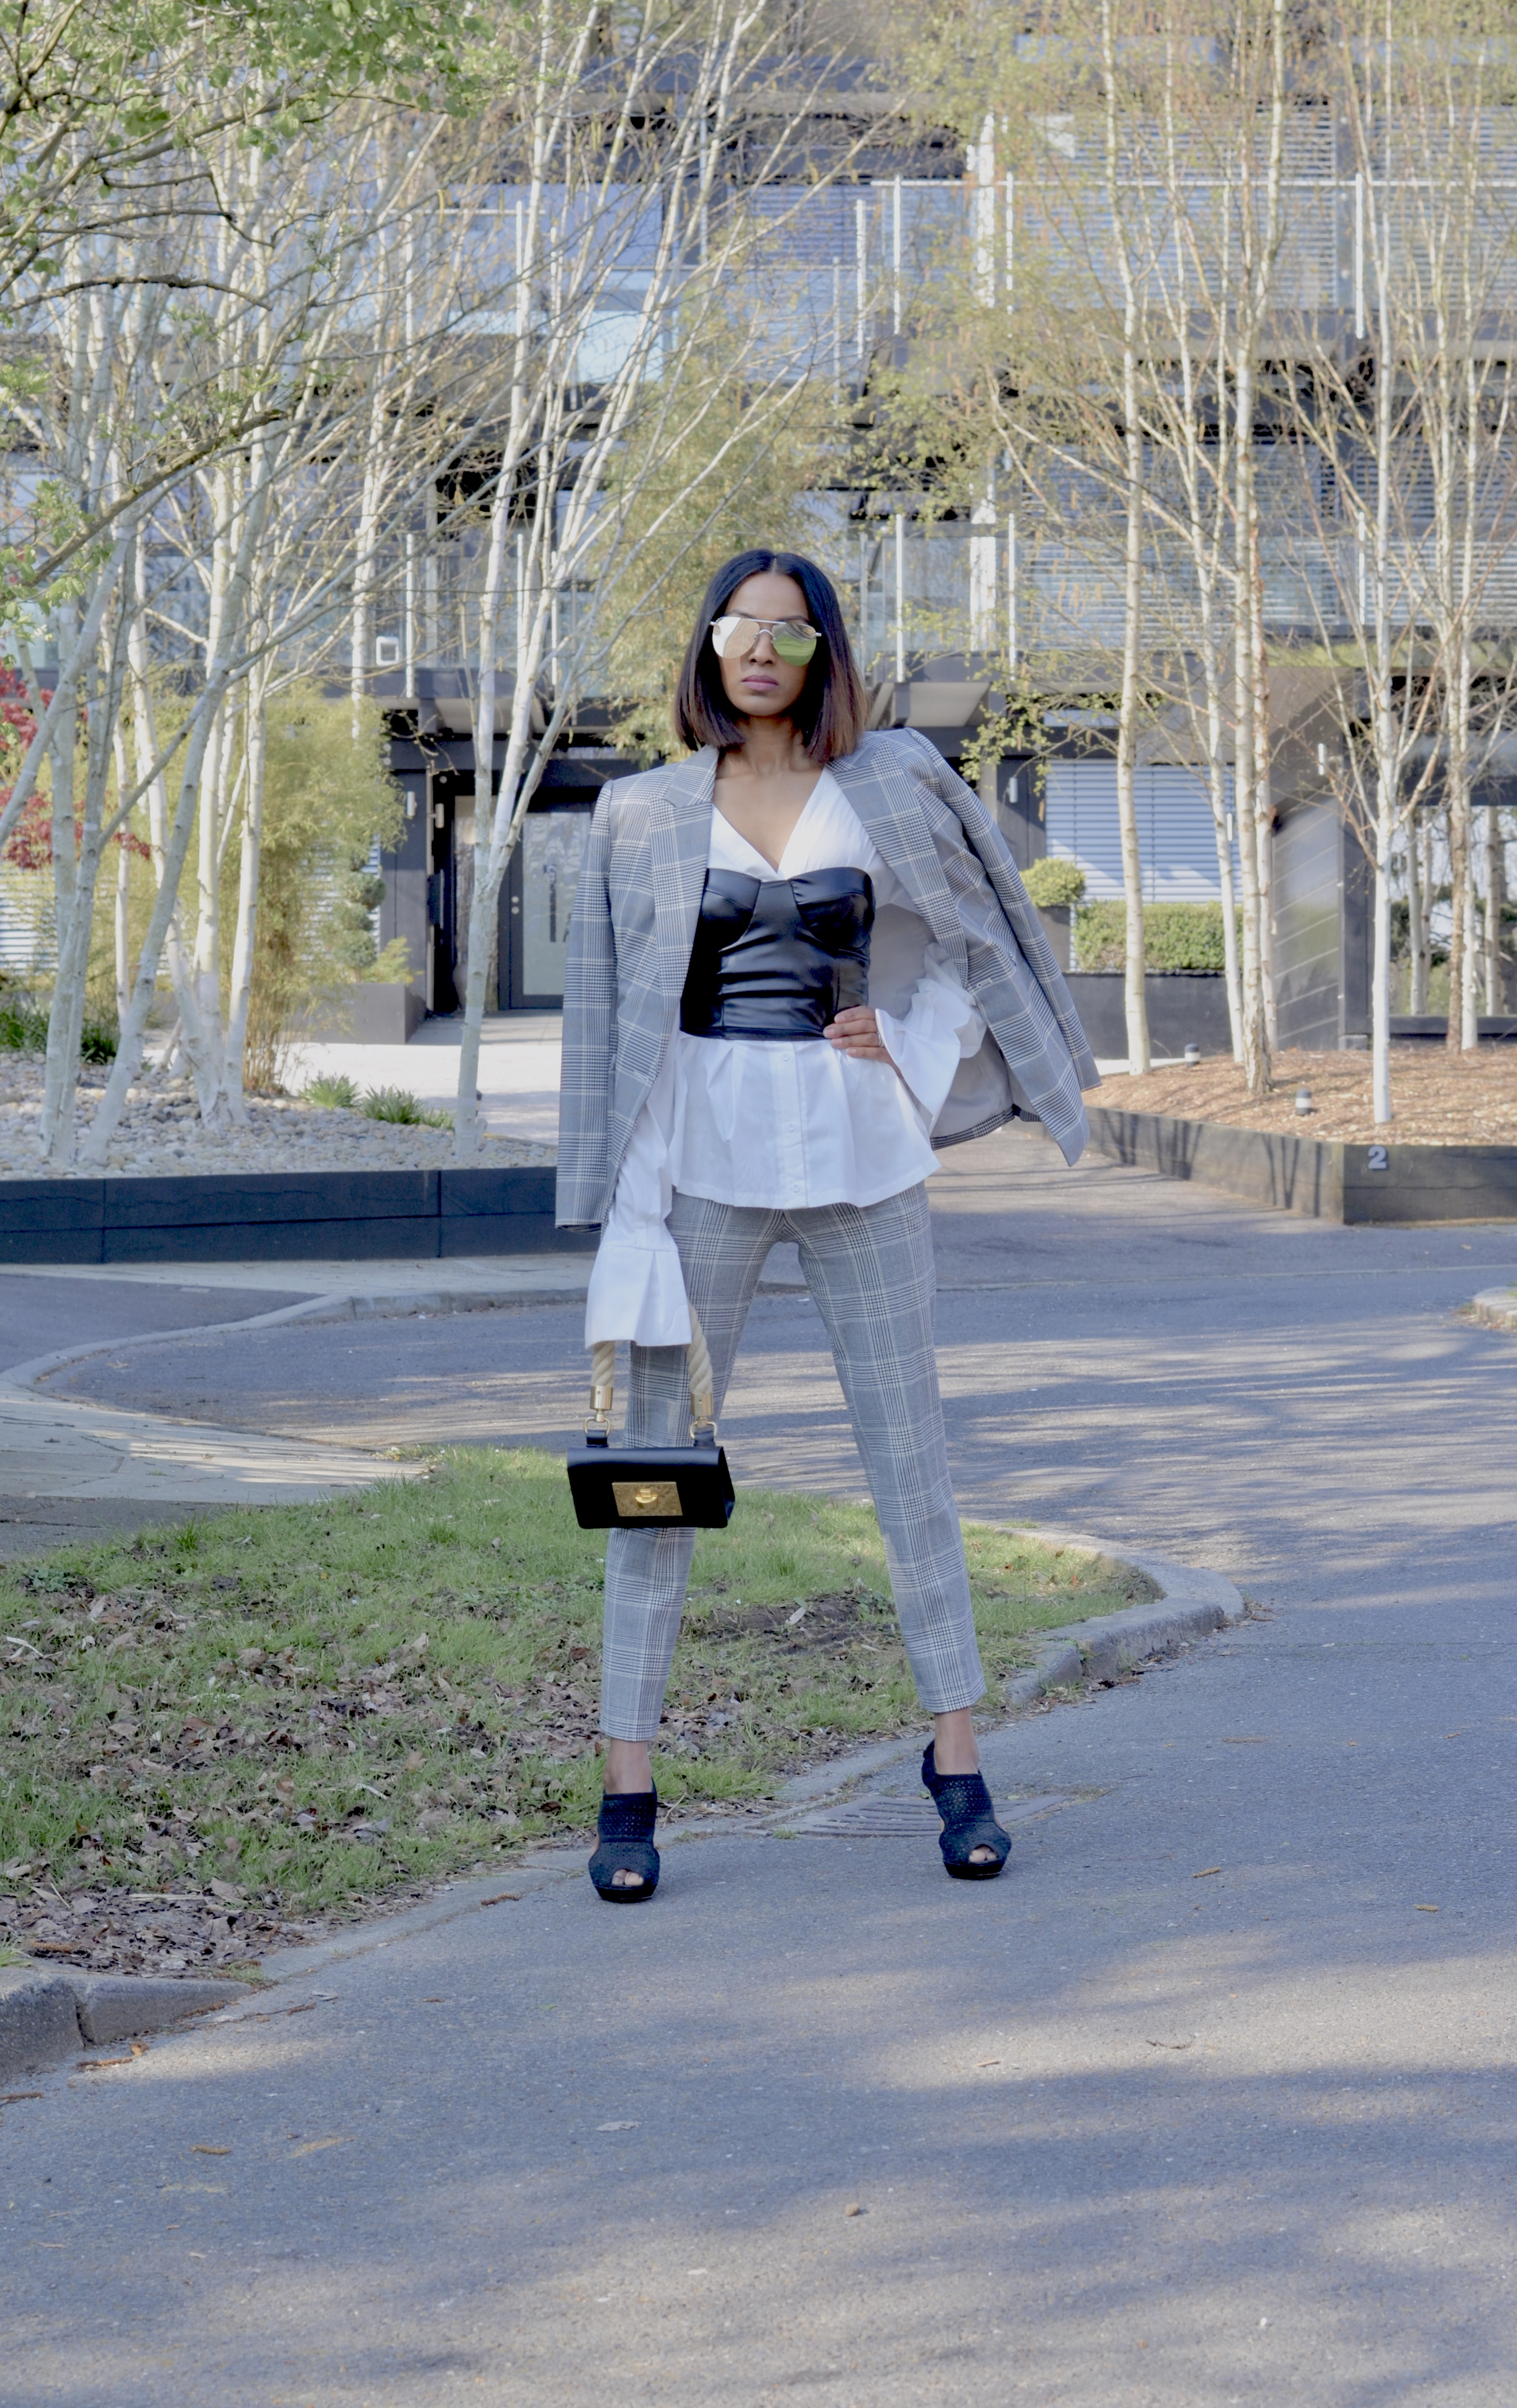 HOW TO STYLE A BUSTIER WITH A SUIT